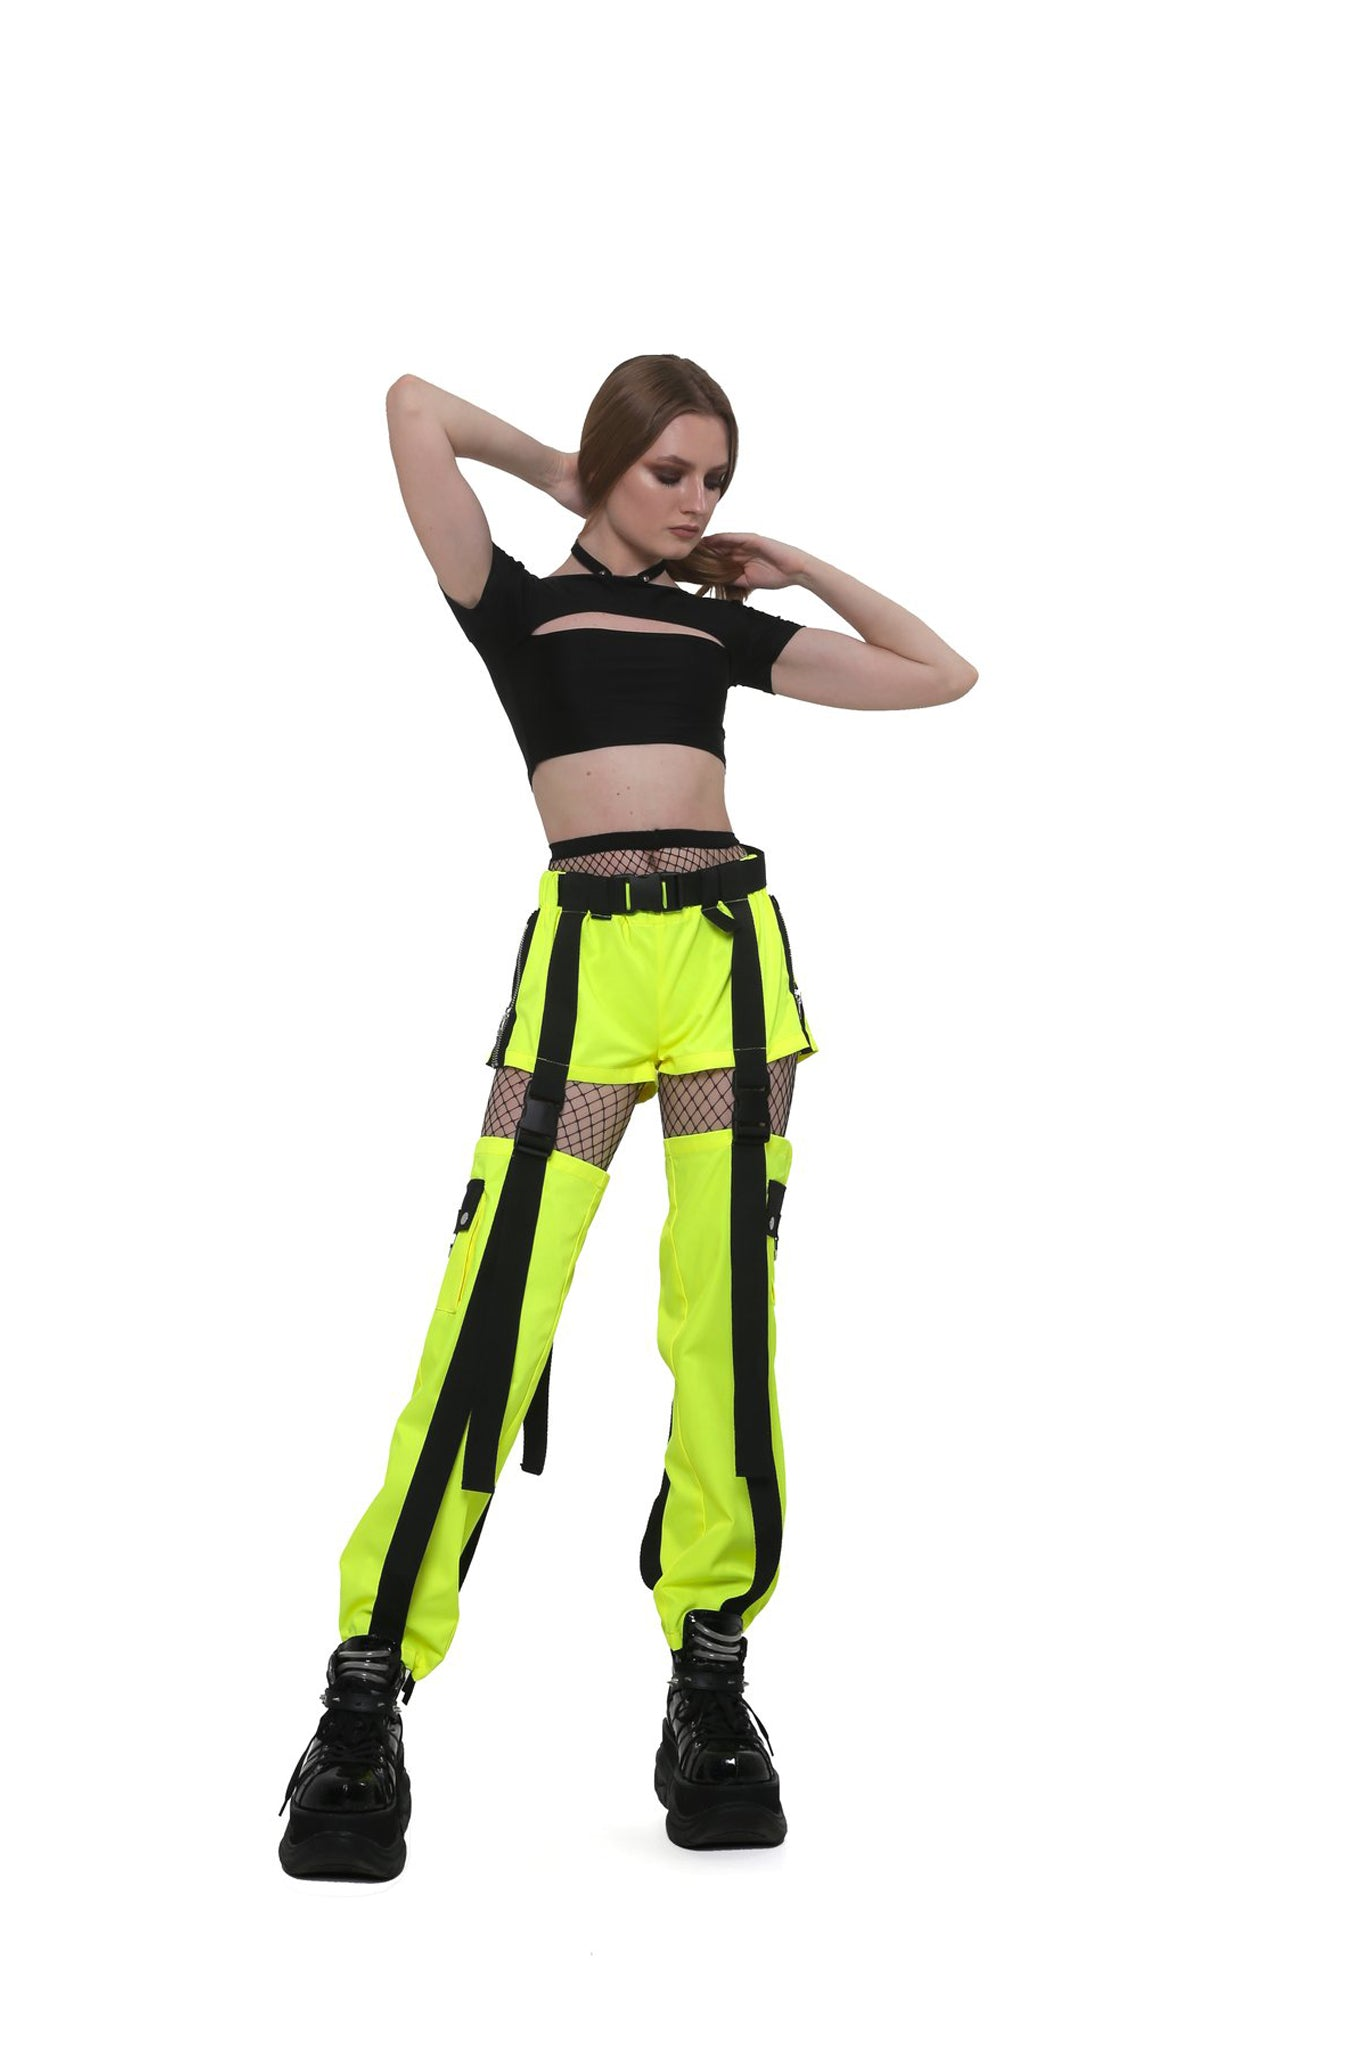 2-way cargo pants. [Neon Lemon]